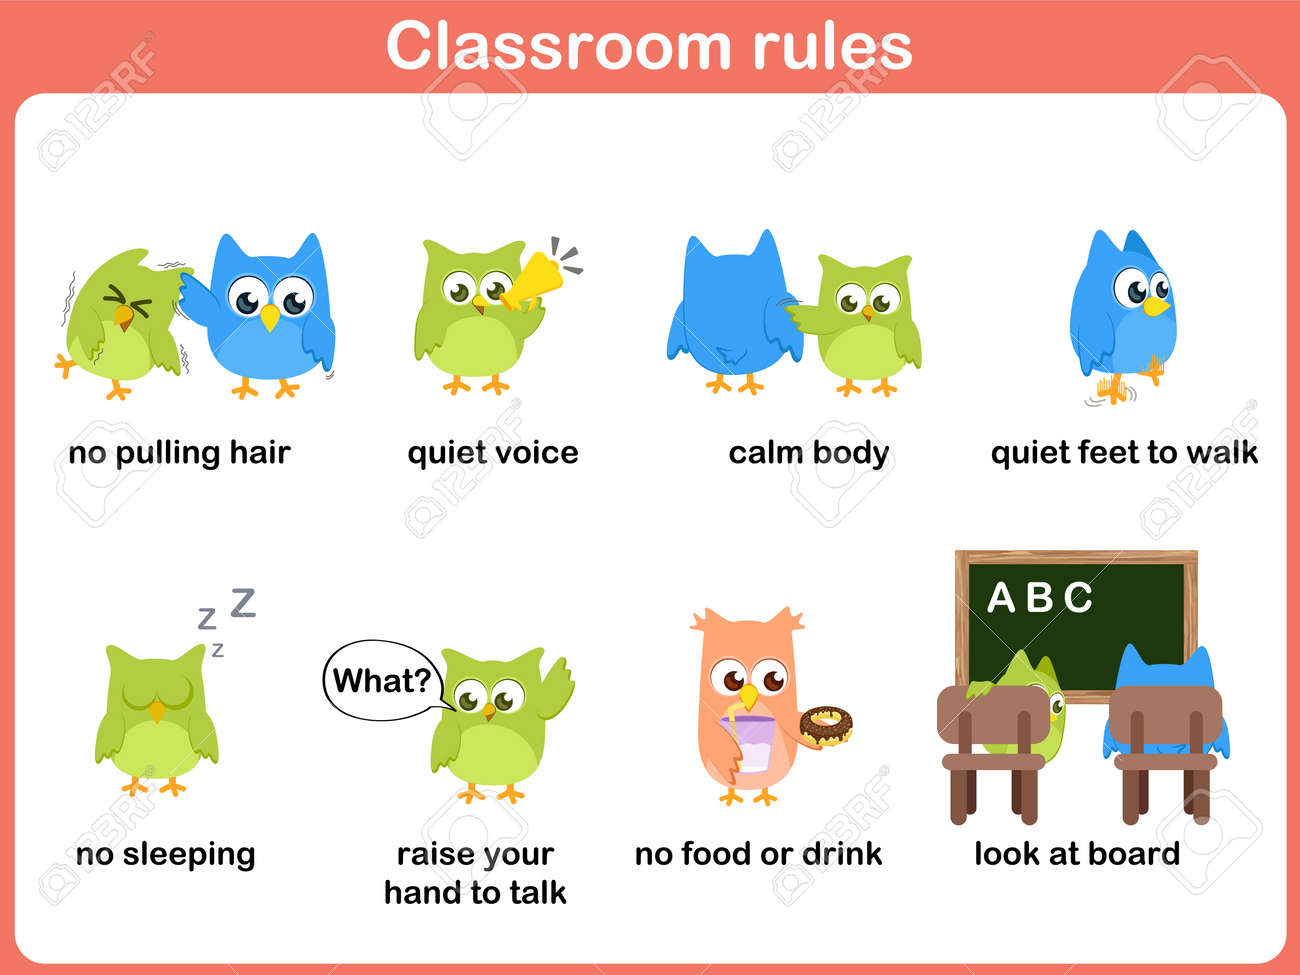 classroom rules for kids royalty free cliparts, vectors, and stock